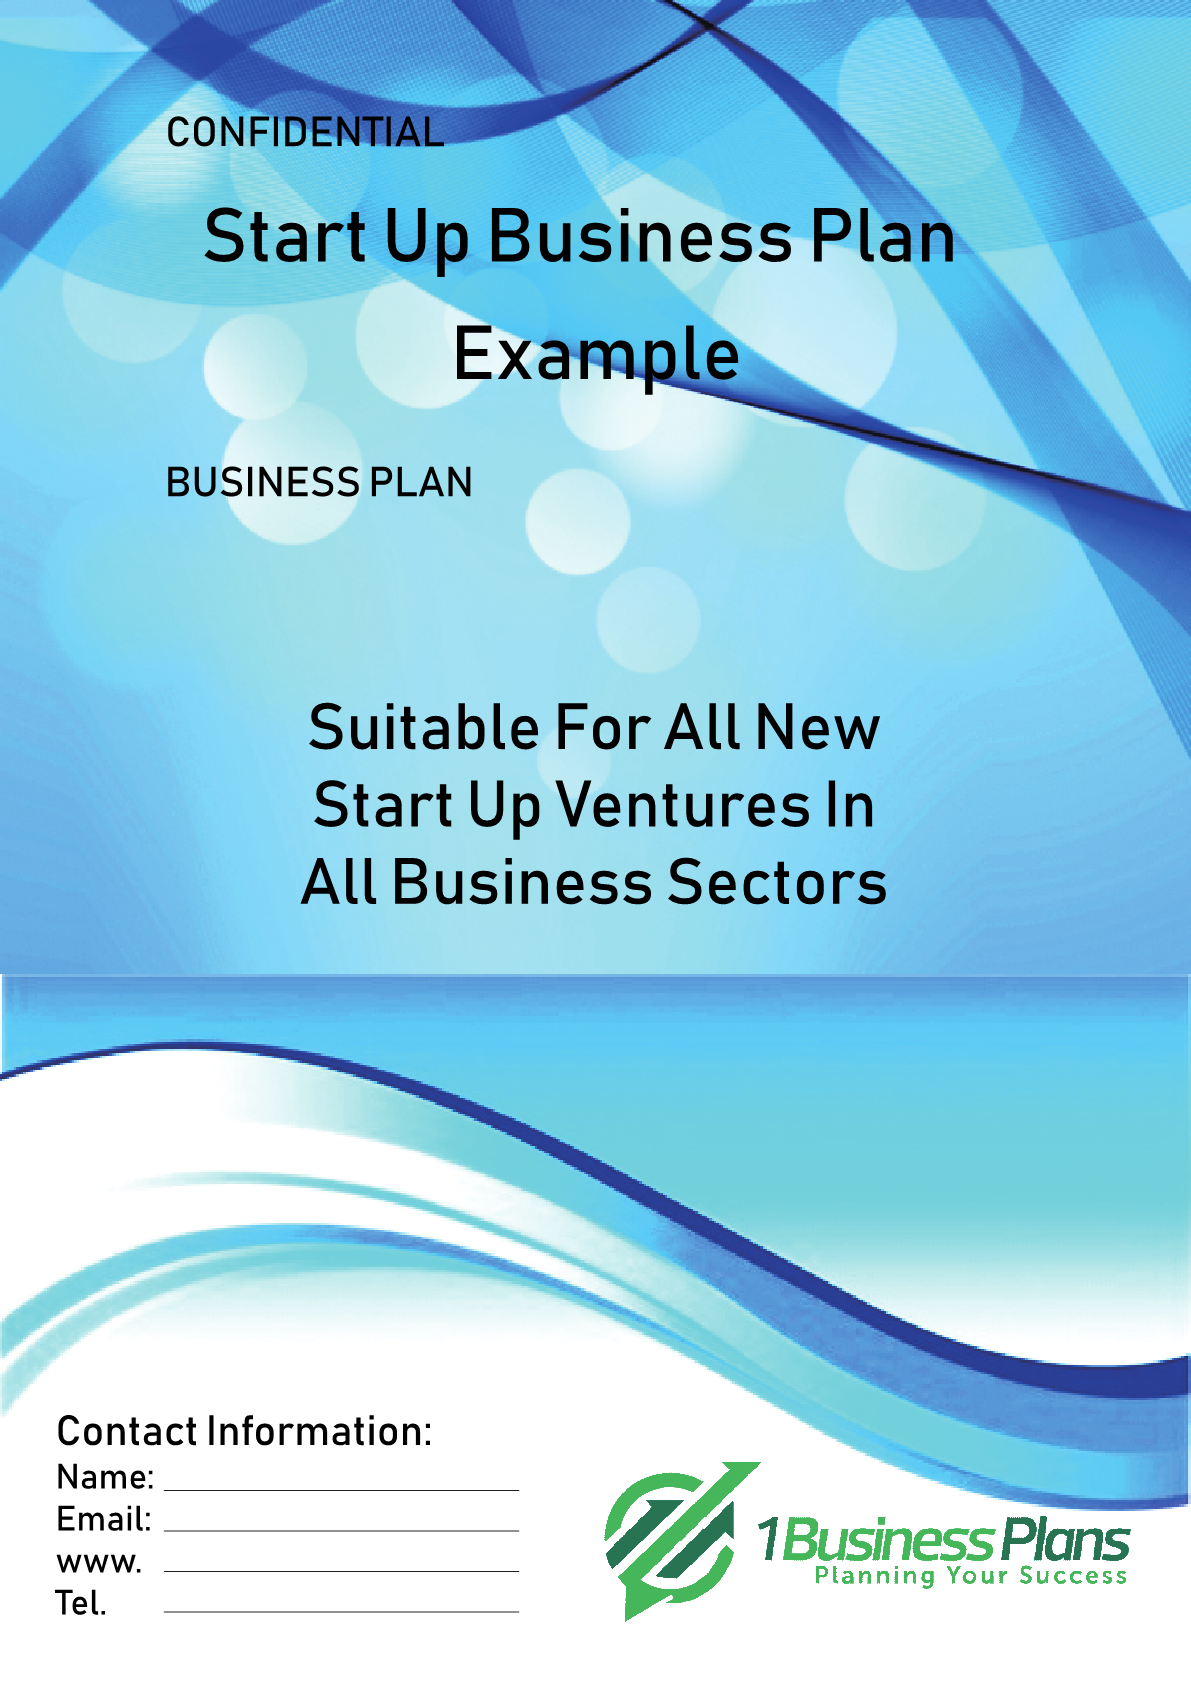 Start Up business plan example